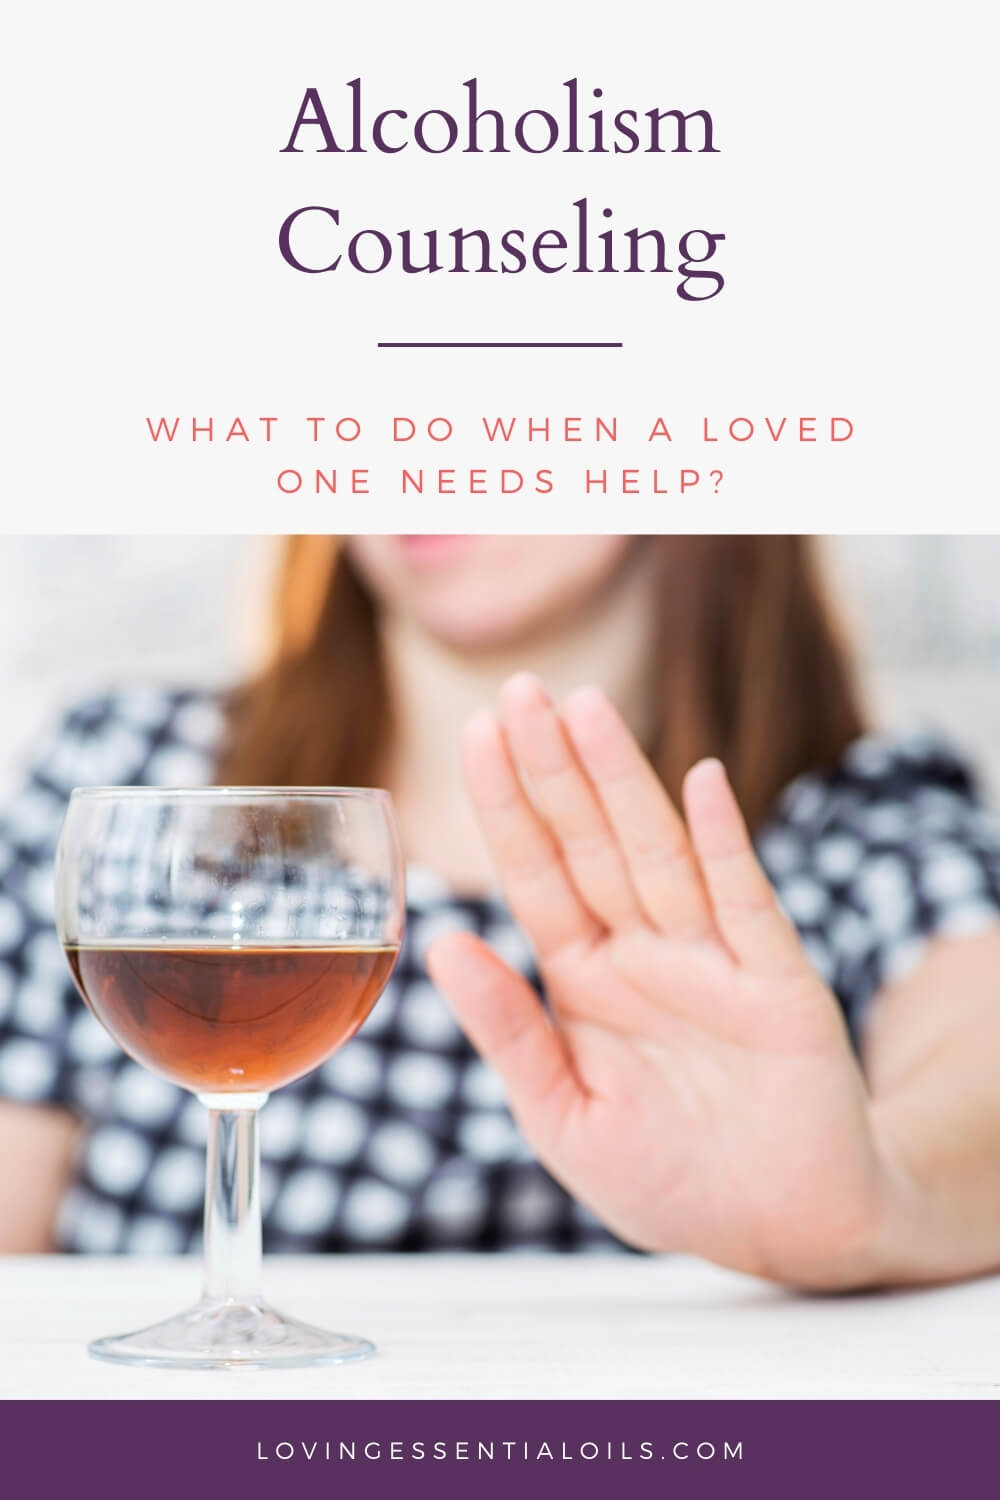 Alcoholic Counseling - What to do when a loved one needs help?